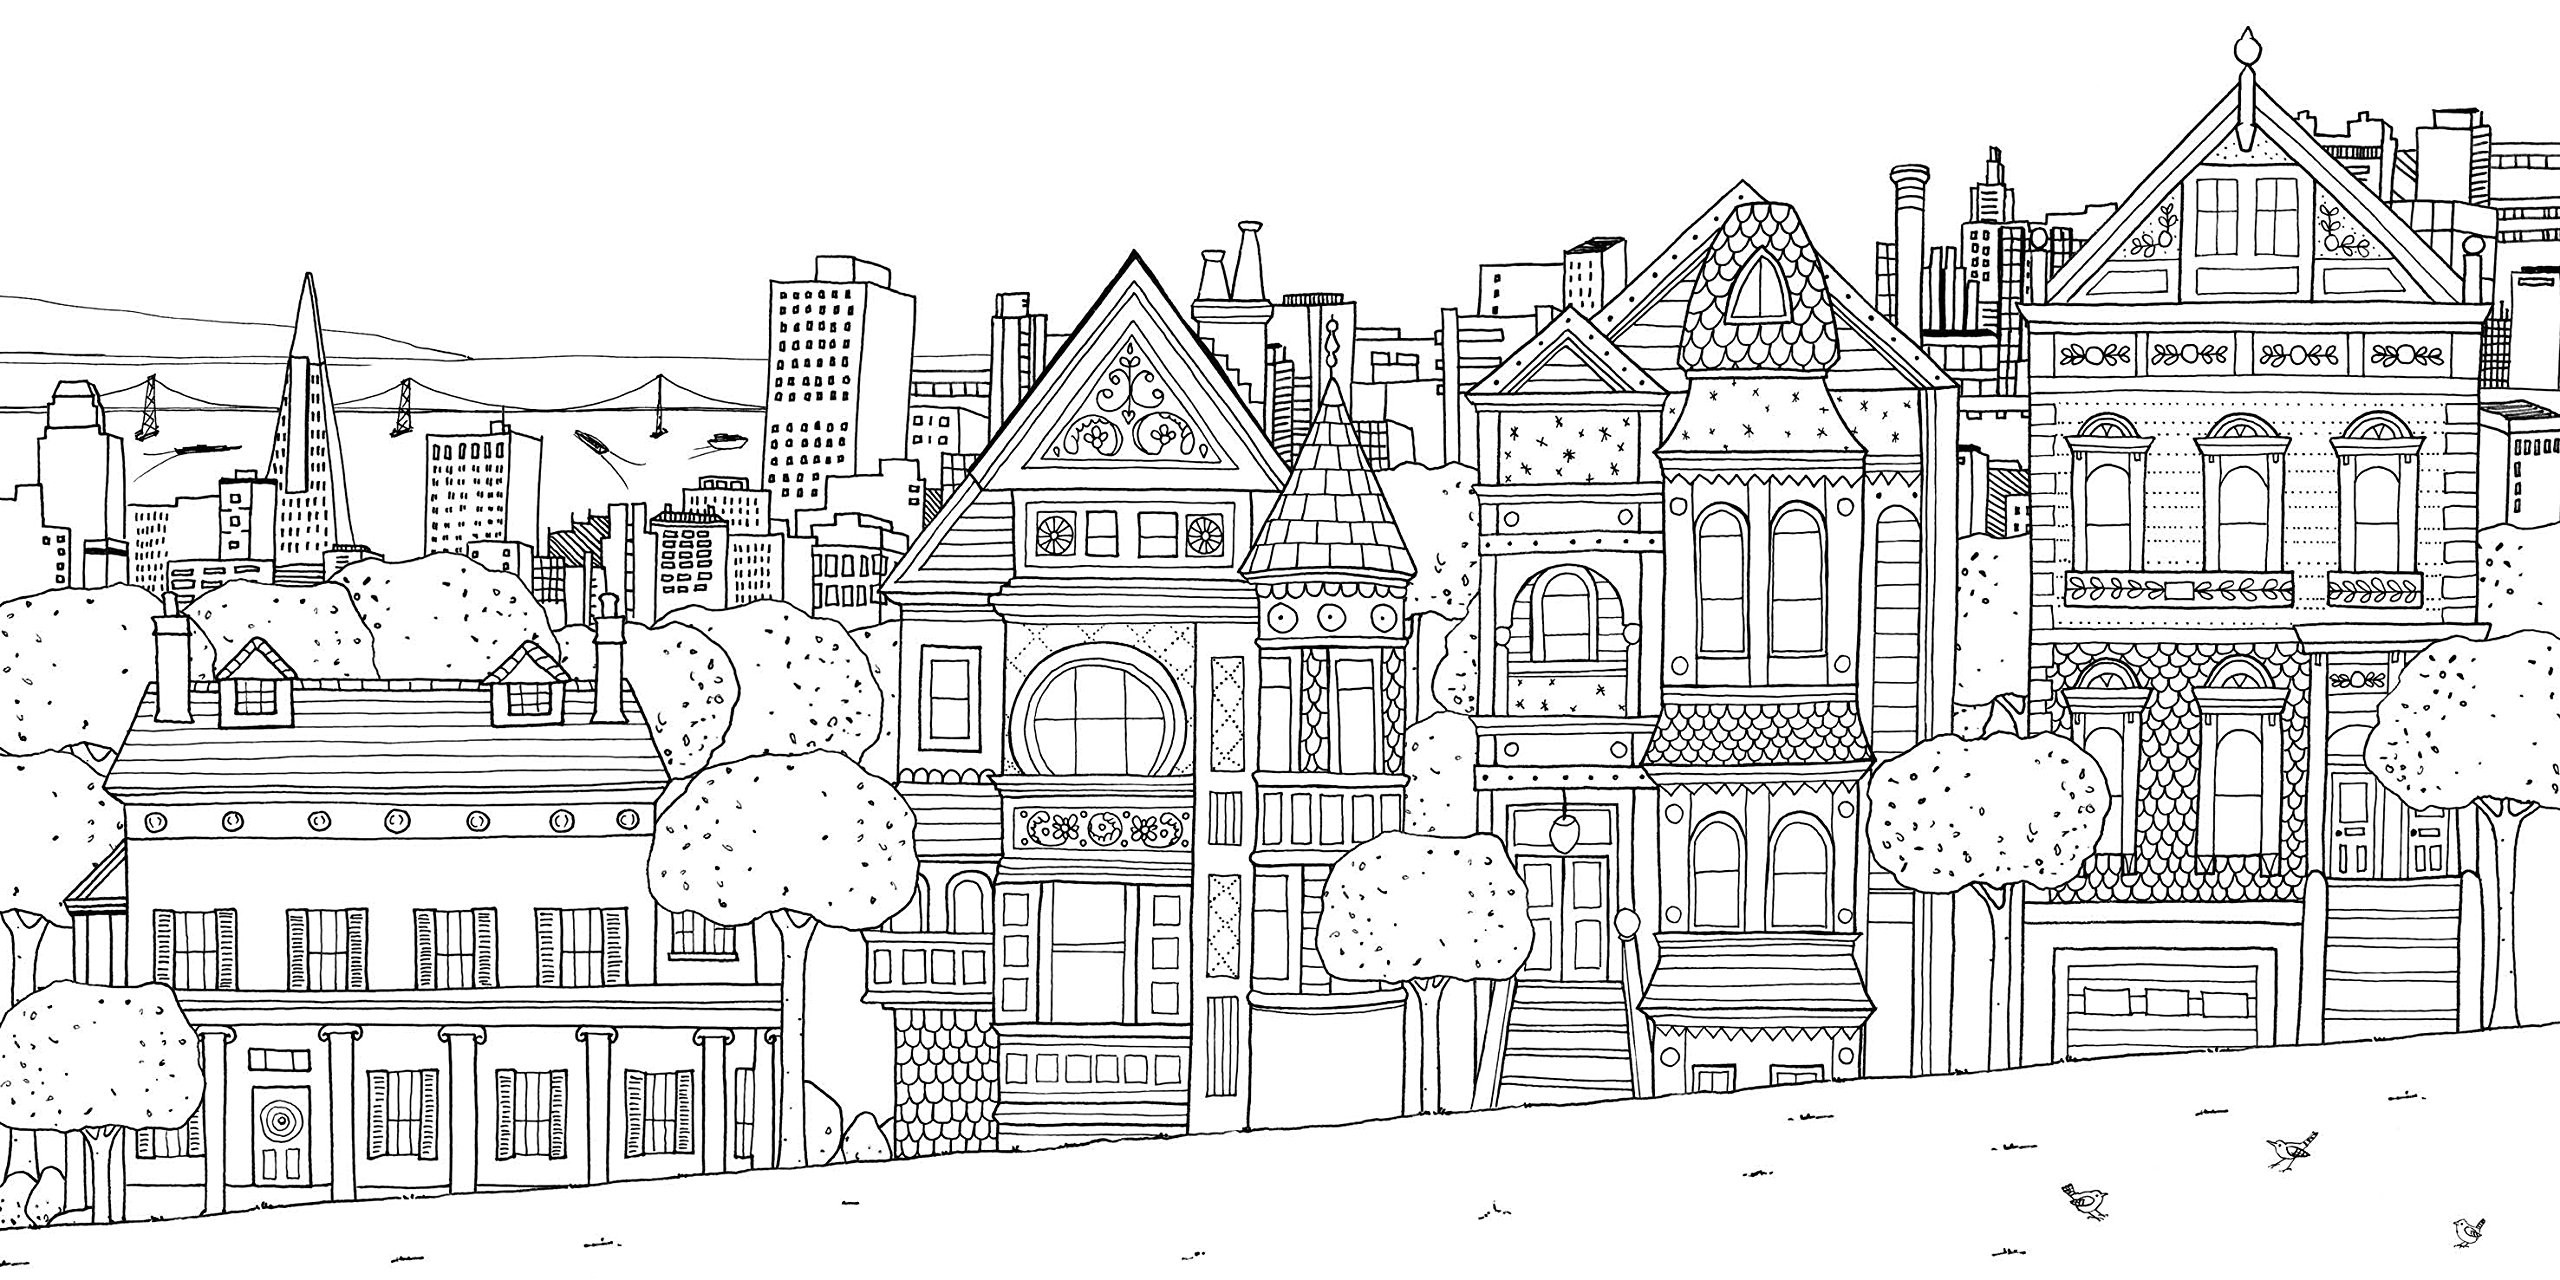 Best ideas about House Coloring Pages For Adults . Save or Pin San franscico houses Architecture Adult Coloring Pages Now.